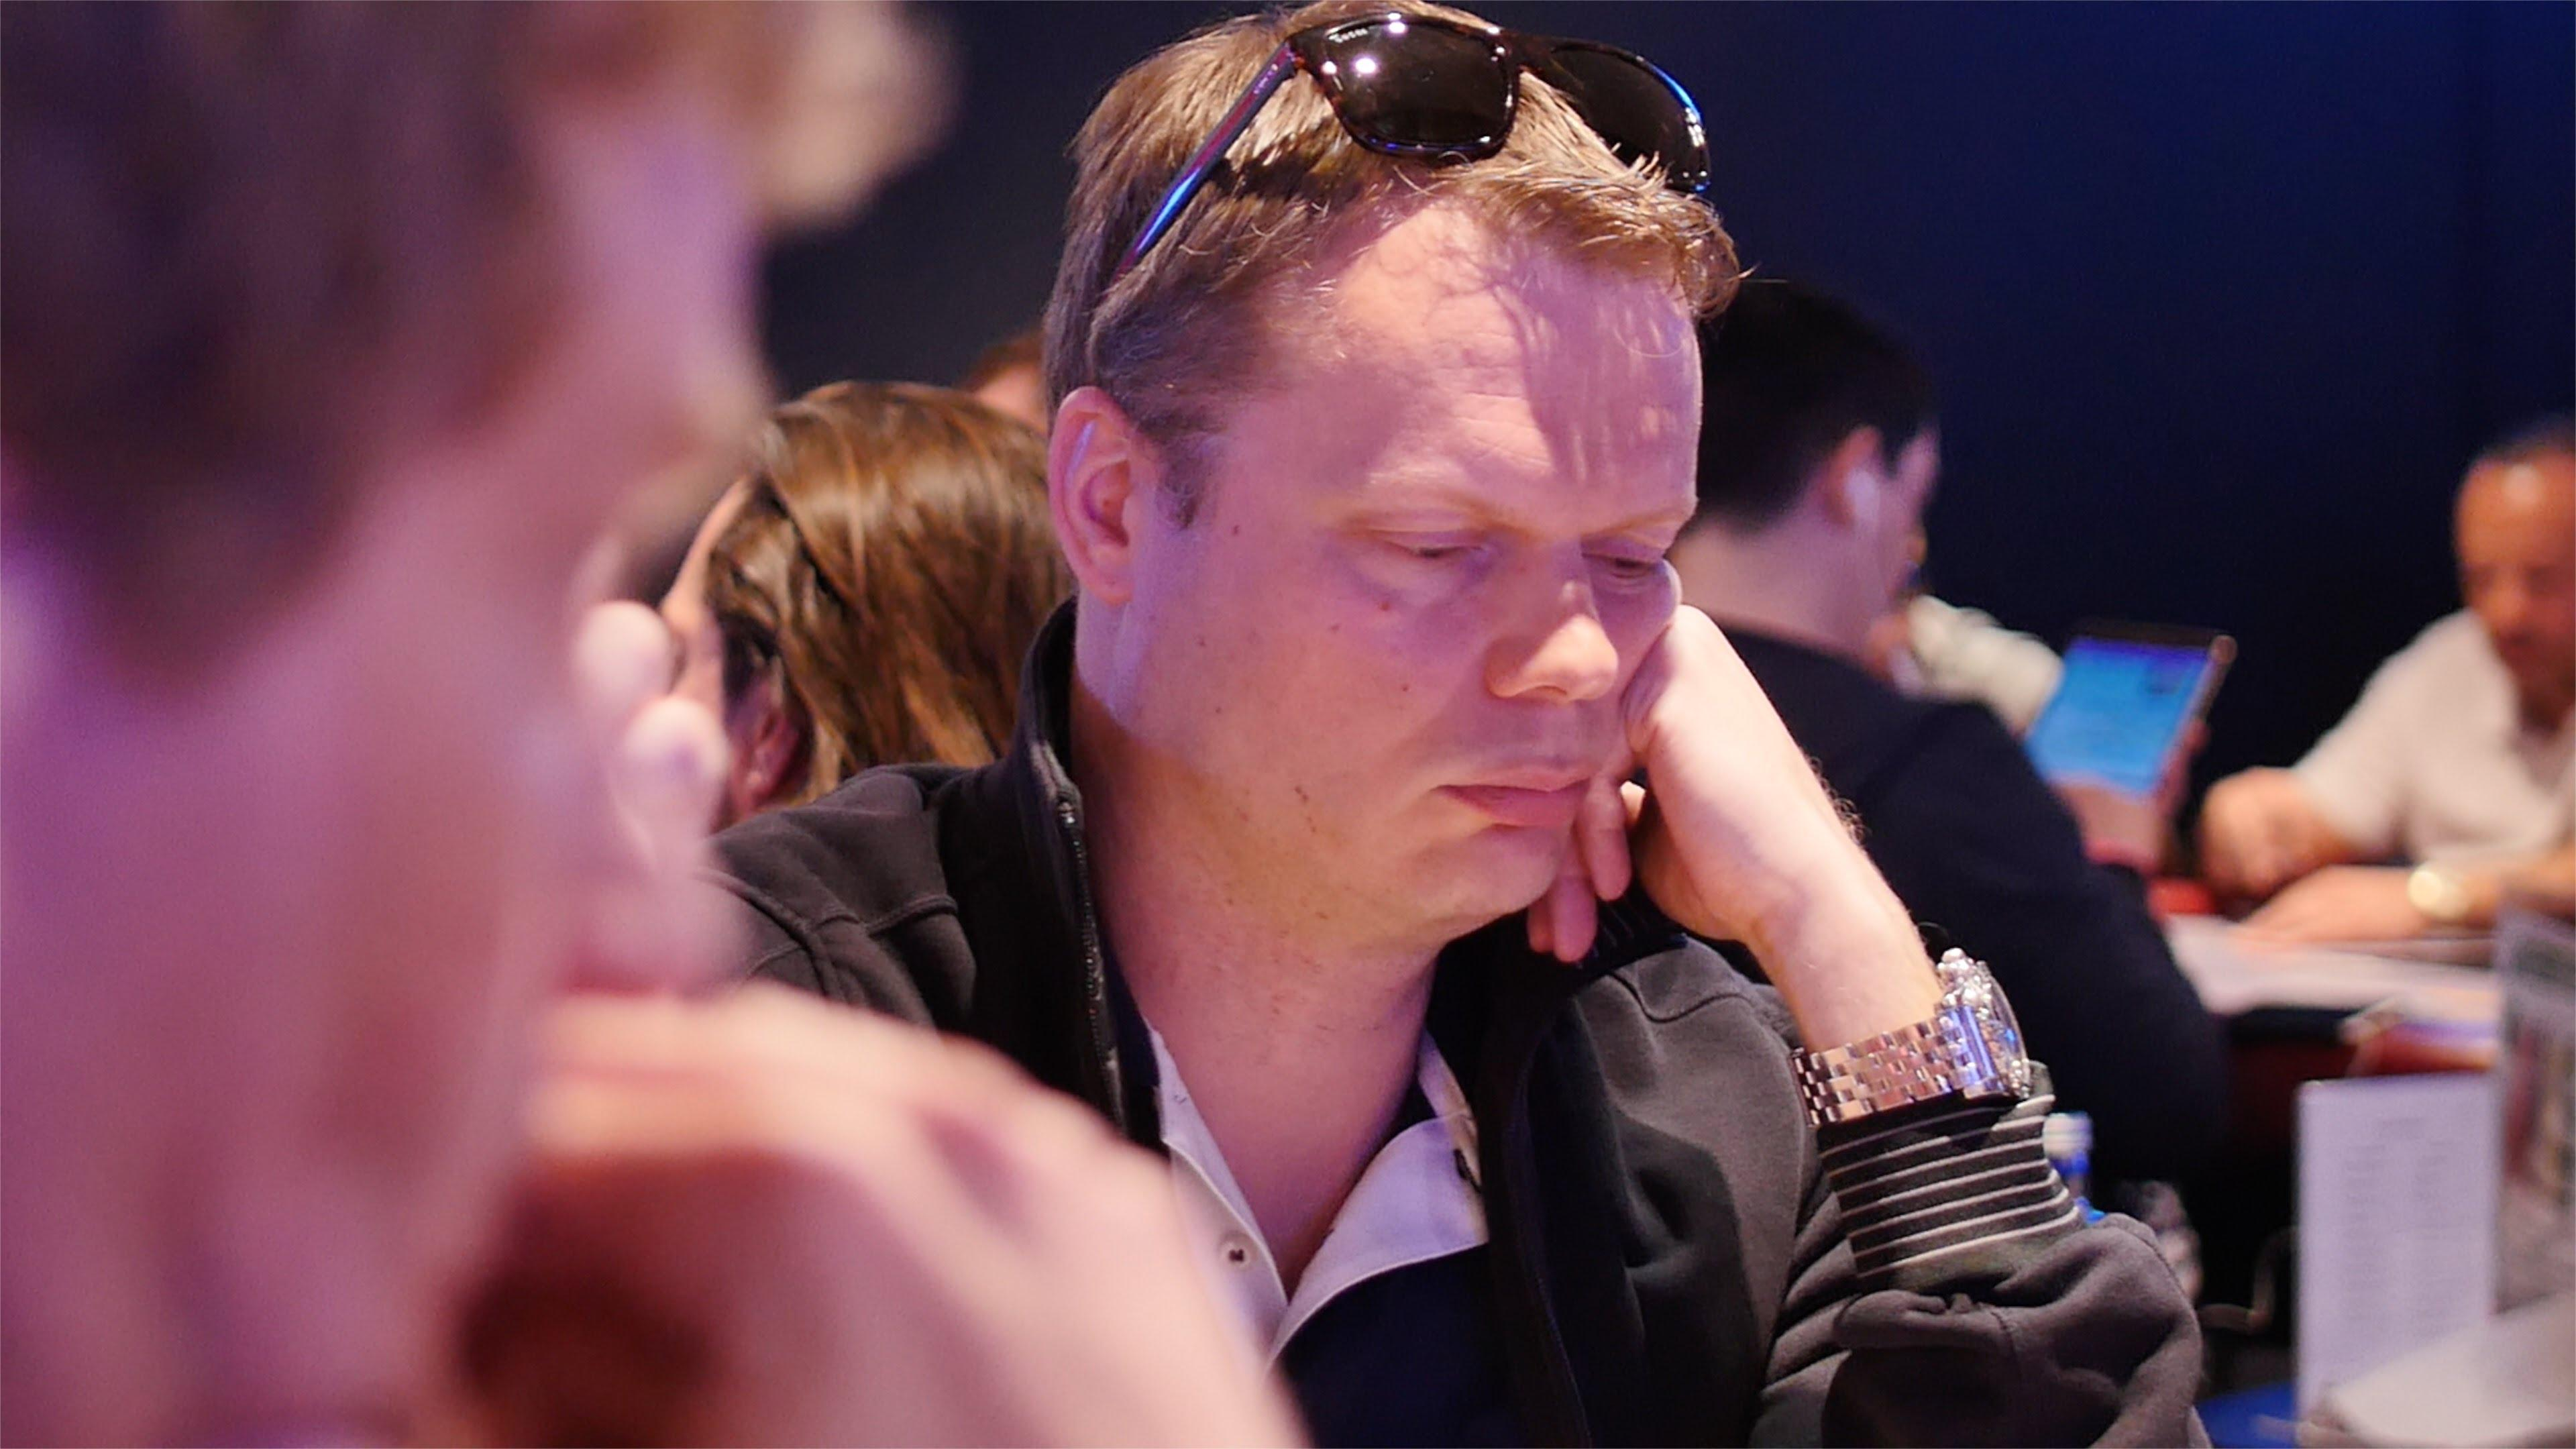 WPT Amsterdam - The Secrets of Juha Helppi